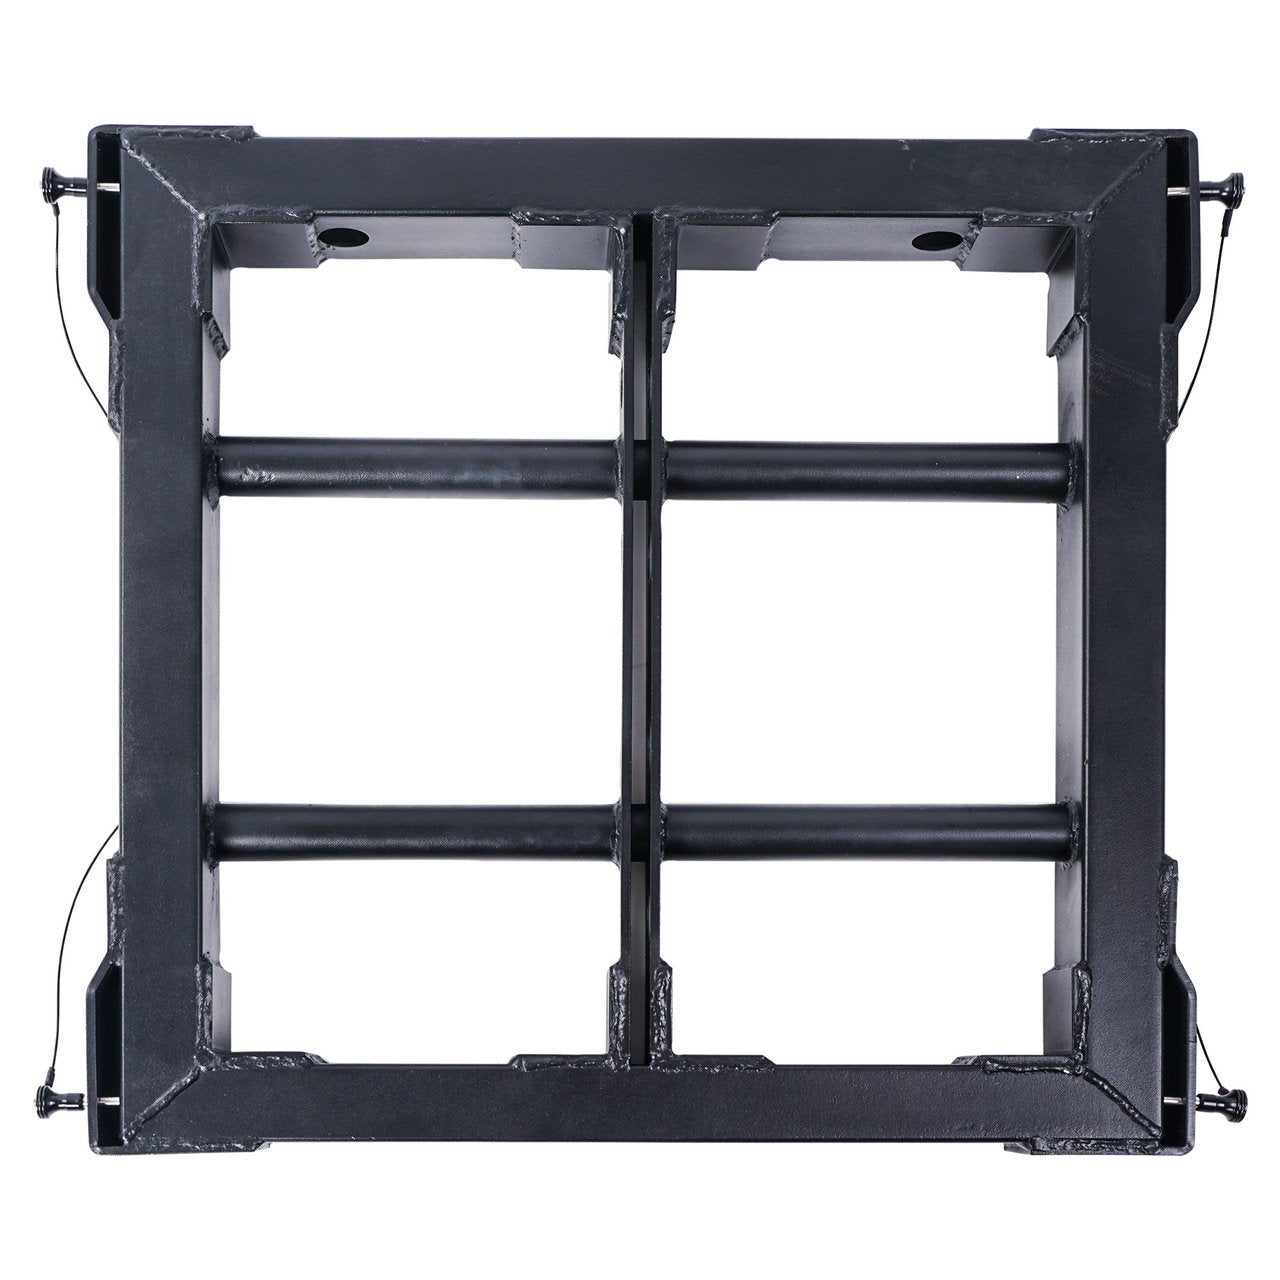 ZETHUS Series Mounting Frame for Line Array Speakers and Subwoofers (ZETHUS-110FF)